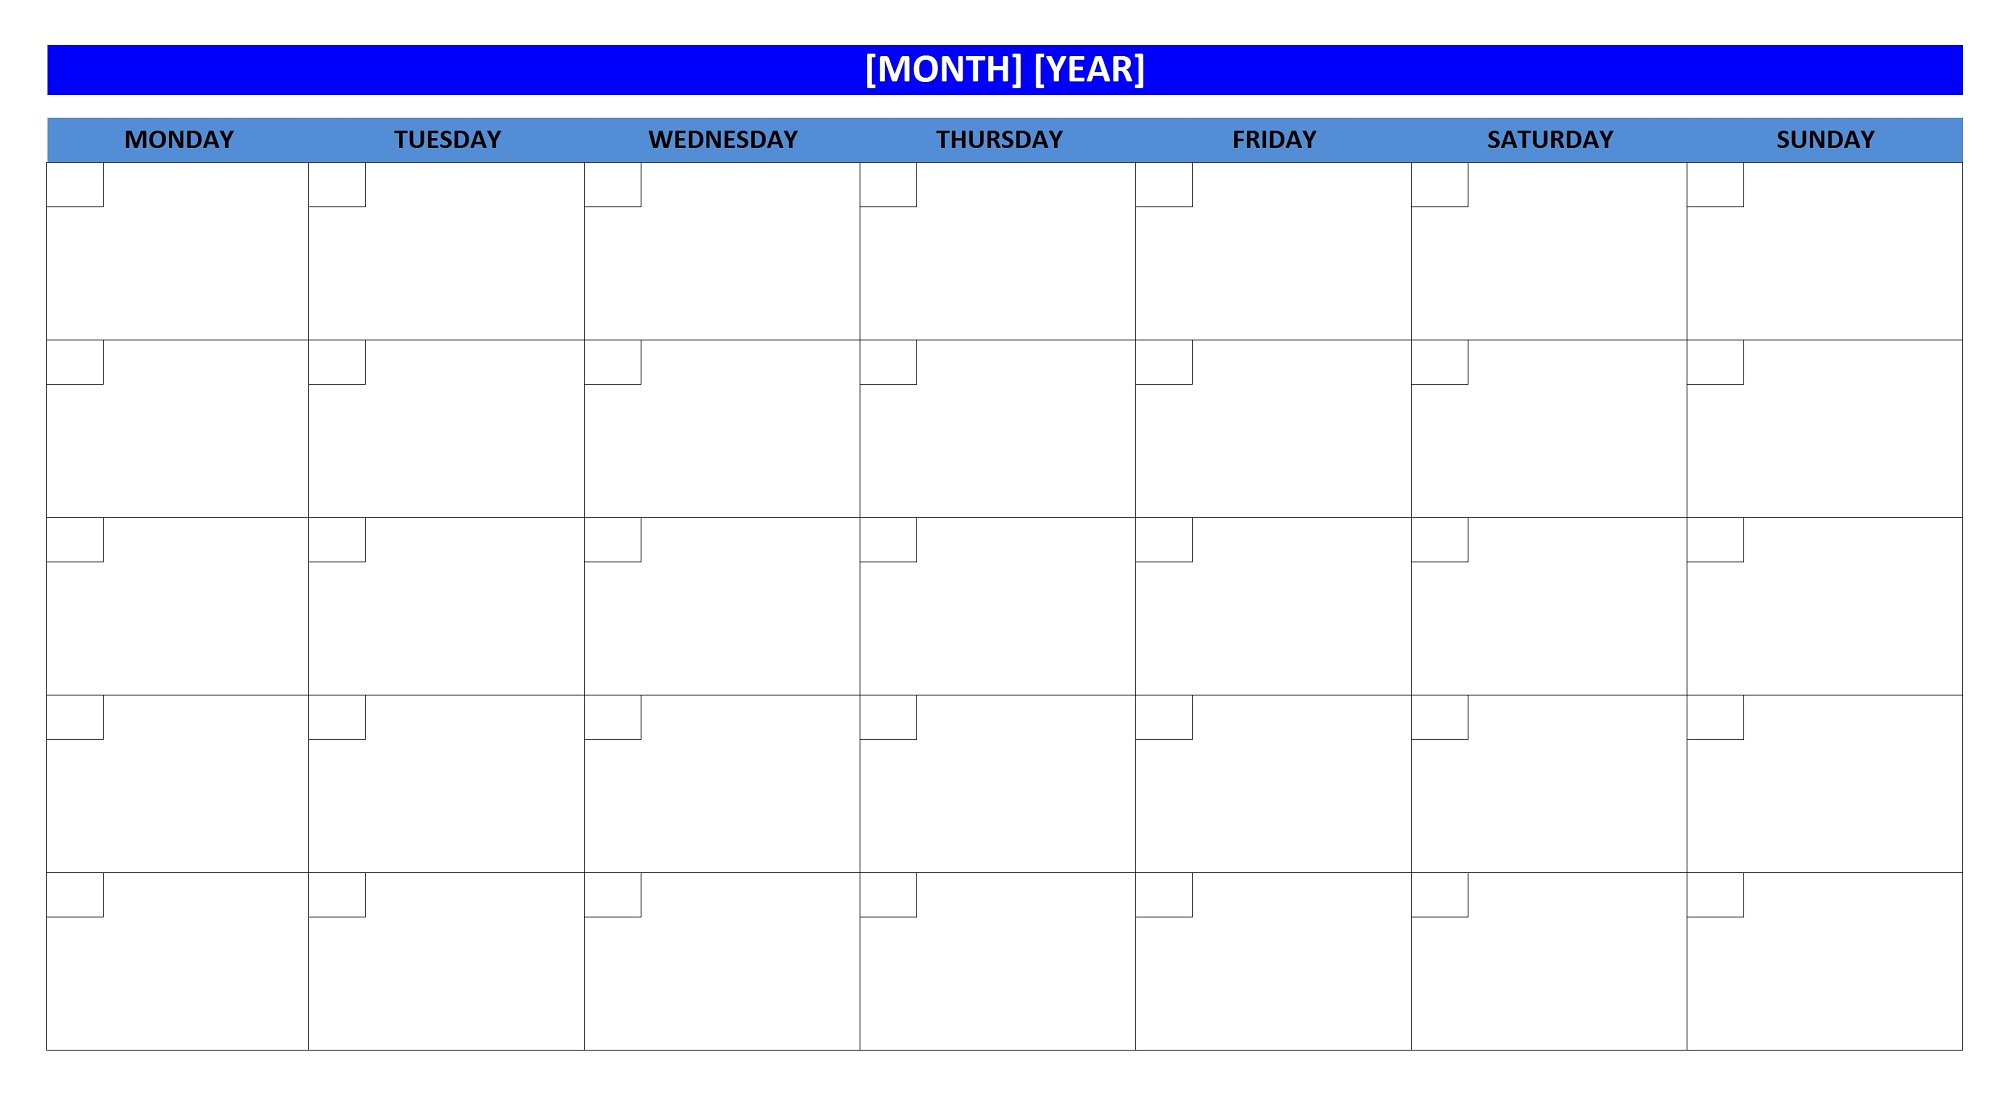 Blank Calendar Image : Blank weekly calendars printable activity shelter